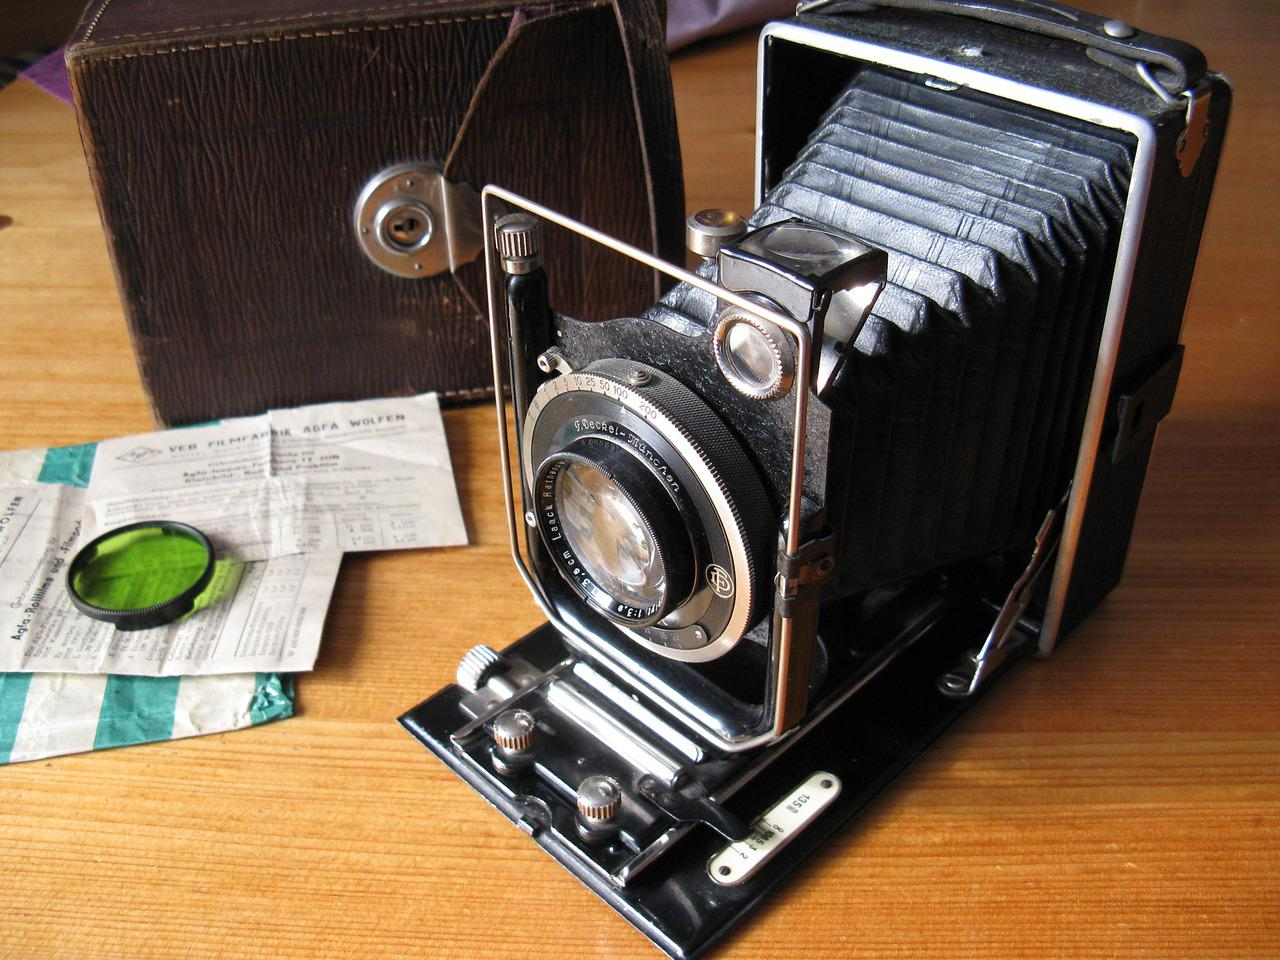 Pictures of slide projector FalconWatch